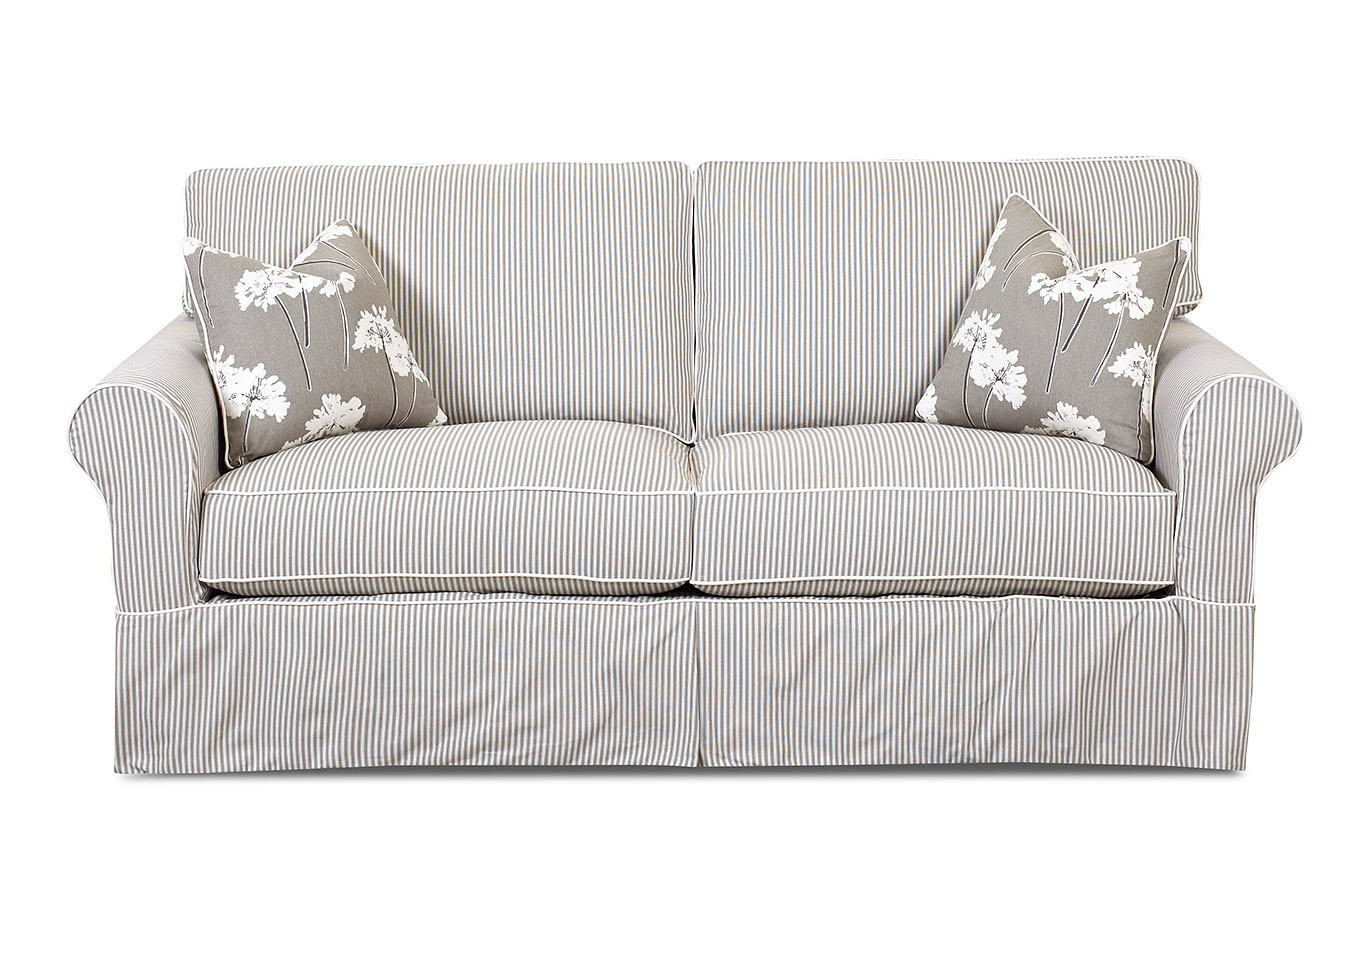 Southern Shores Polo Storm Striped Stationary Fabric Sofa,Klaussner Home Furnishings